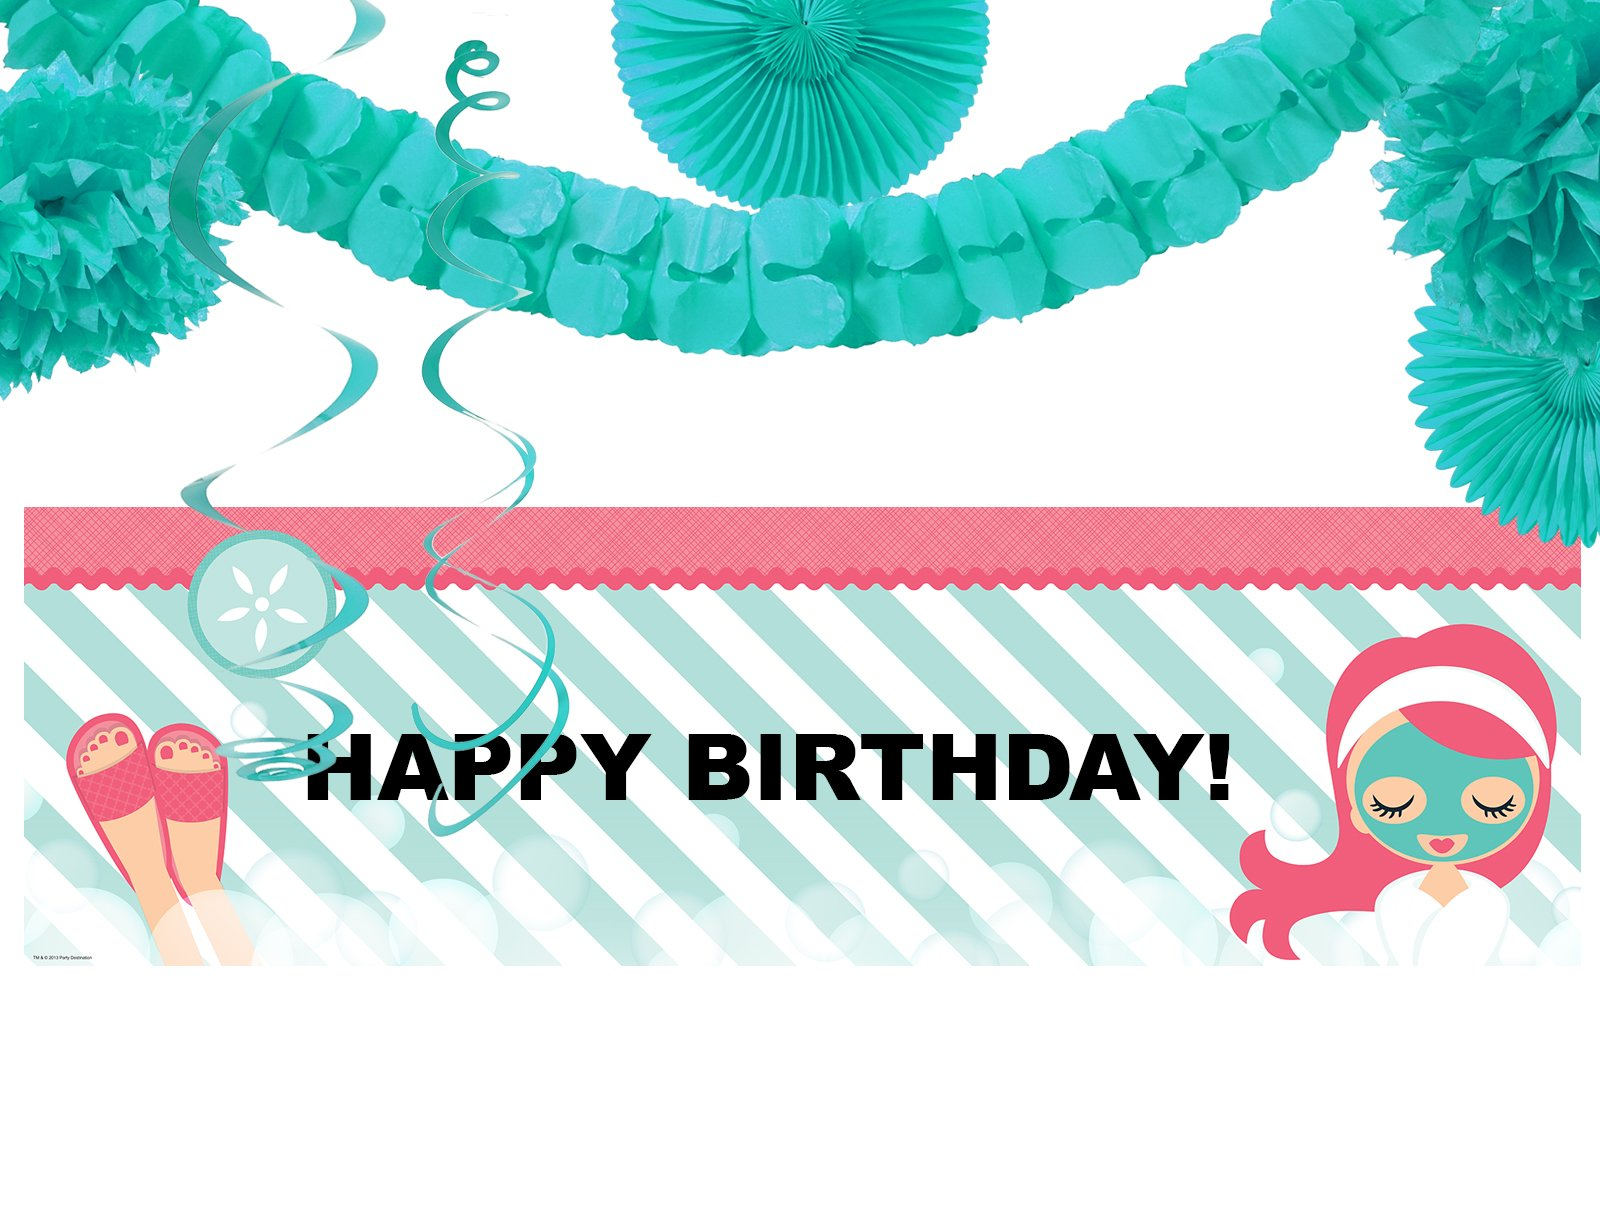 Little Spa Salon Makeover Party Supplies - Birthday Banner Decoration Kit